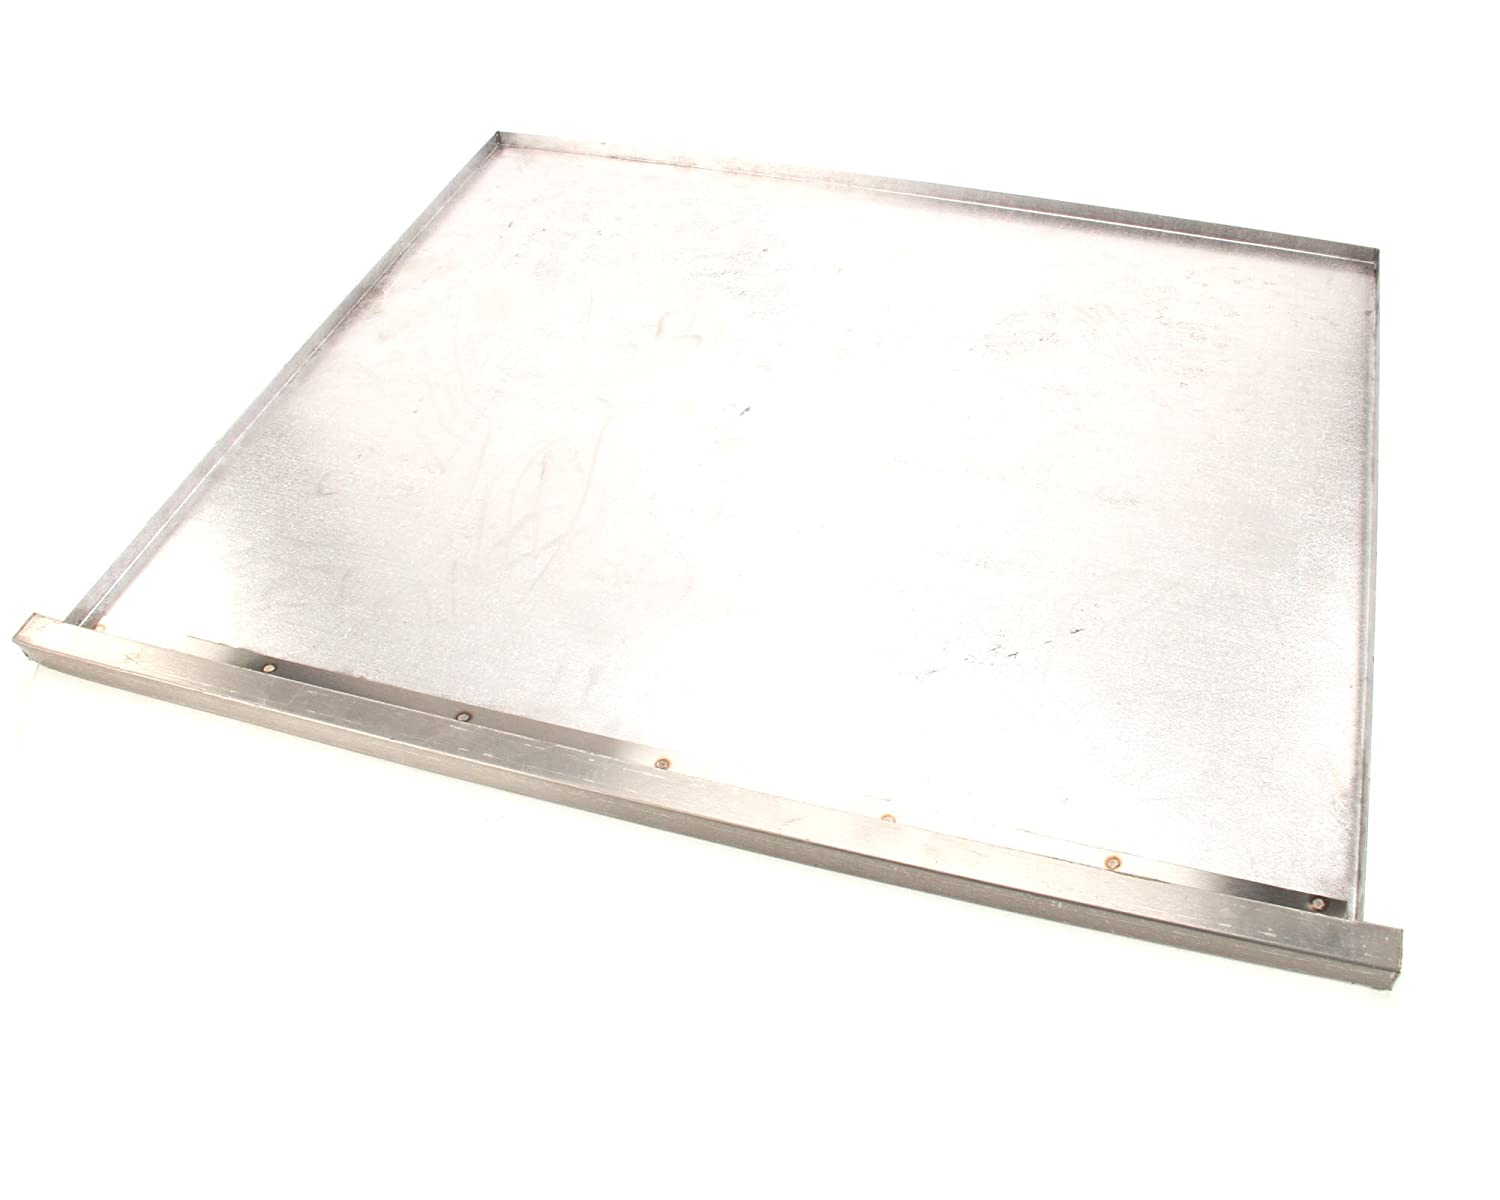 Southbend Range 1161633 Drip Pan with Assembly